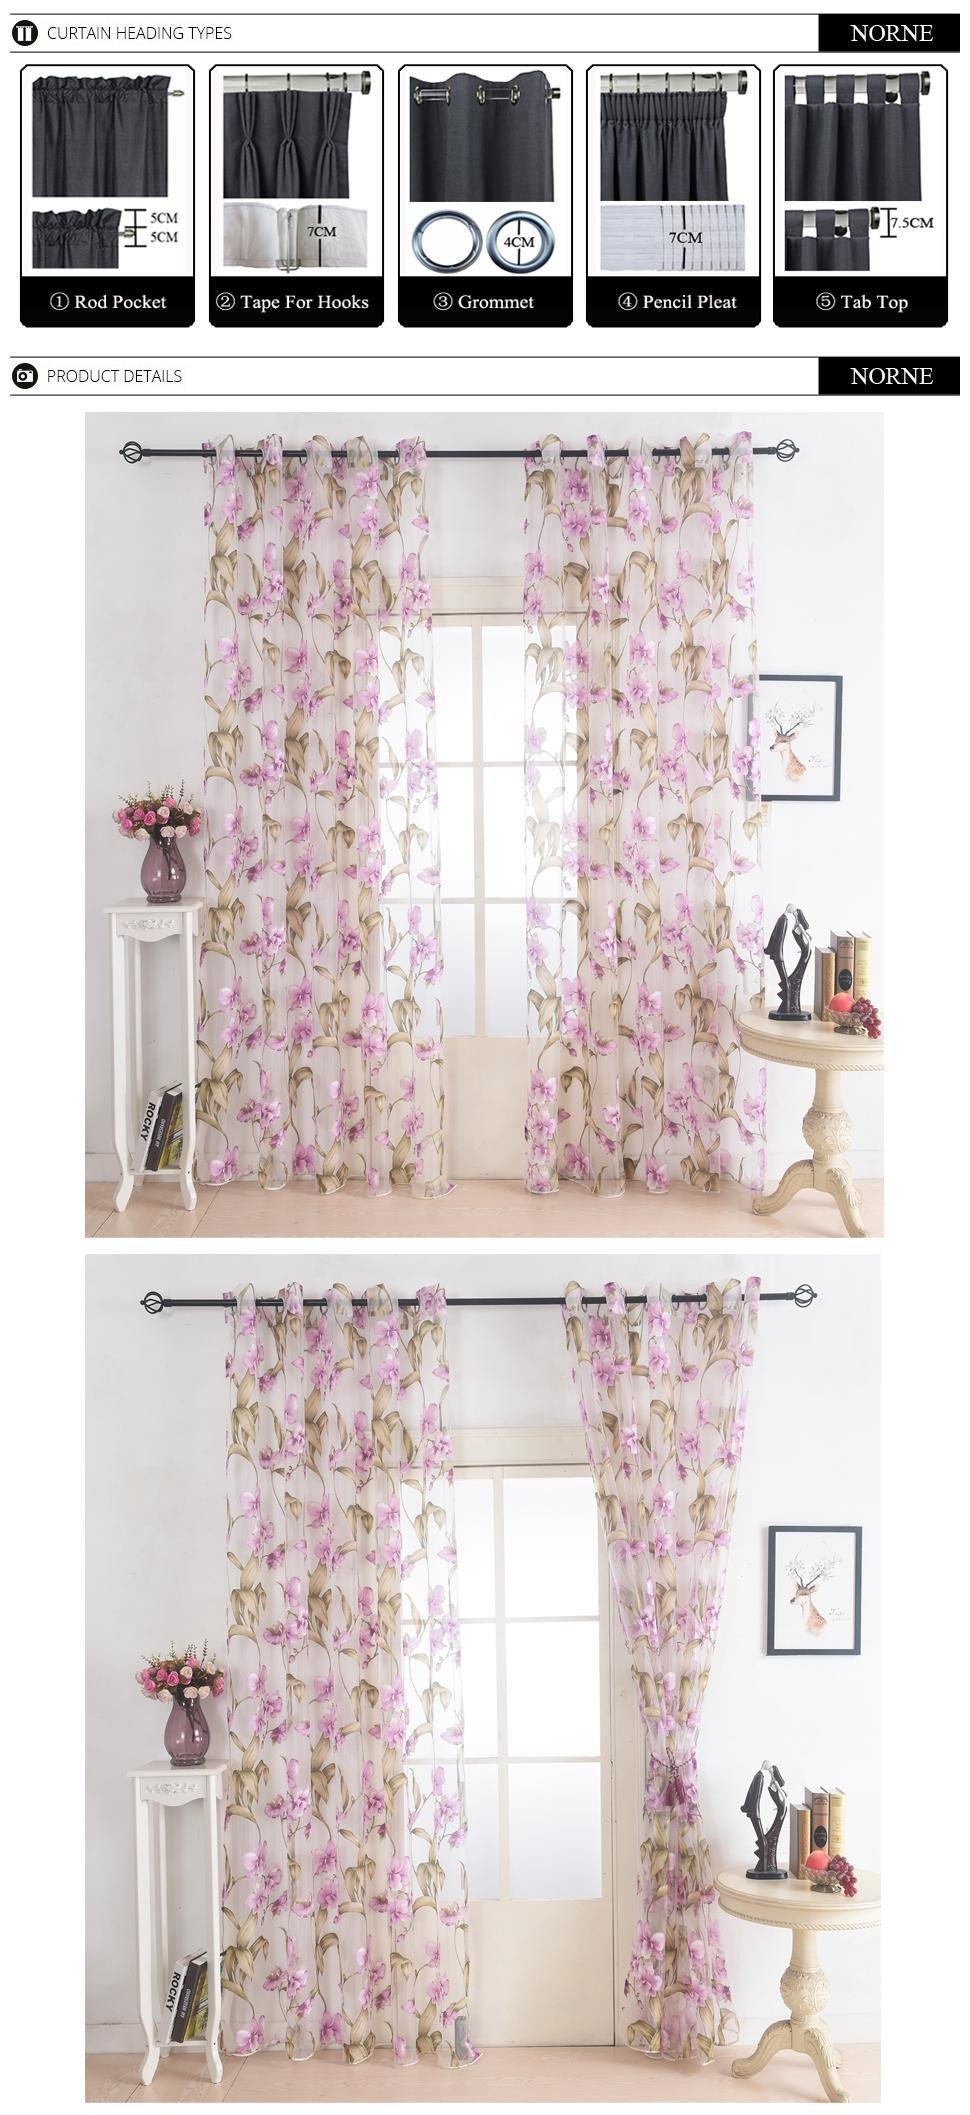 Balloon Curtains for Bedroom New norne Window Punching Grommet Sheer Curtains Voiles Panel for Living Room the Bedroom Kitchen Modern Tulle Curtain Floral Pattern Fabric Balloon